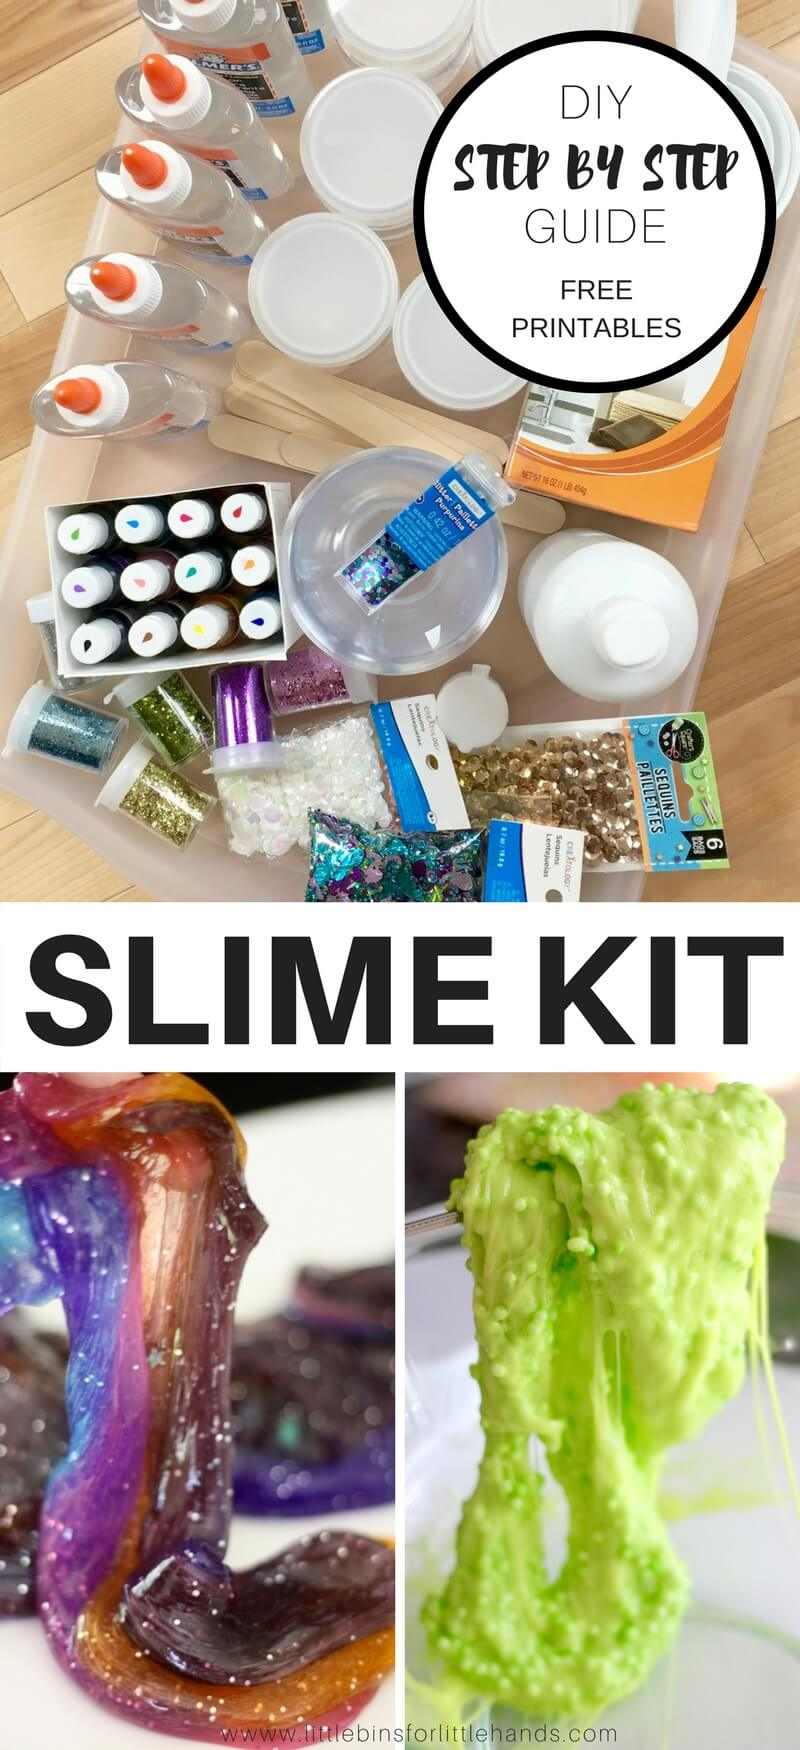 Kids go absolutely crazy for making slime today! Why bother with the dinky little kits in the store when you can put together an easy to make homemade slime kit they will use over and over again. We are going to show you step by step how to build the perfect slime kit to give your kids. Pair it with our printable slime recipe cheat sheet page and keep a slime kit handy for weekends, vacations, and stuck inside days! Homemade slime is an awesome project to share with the kids.